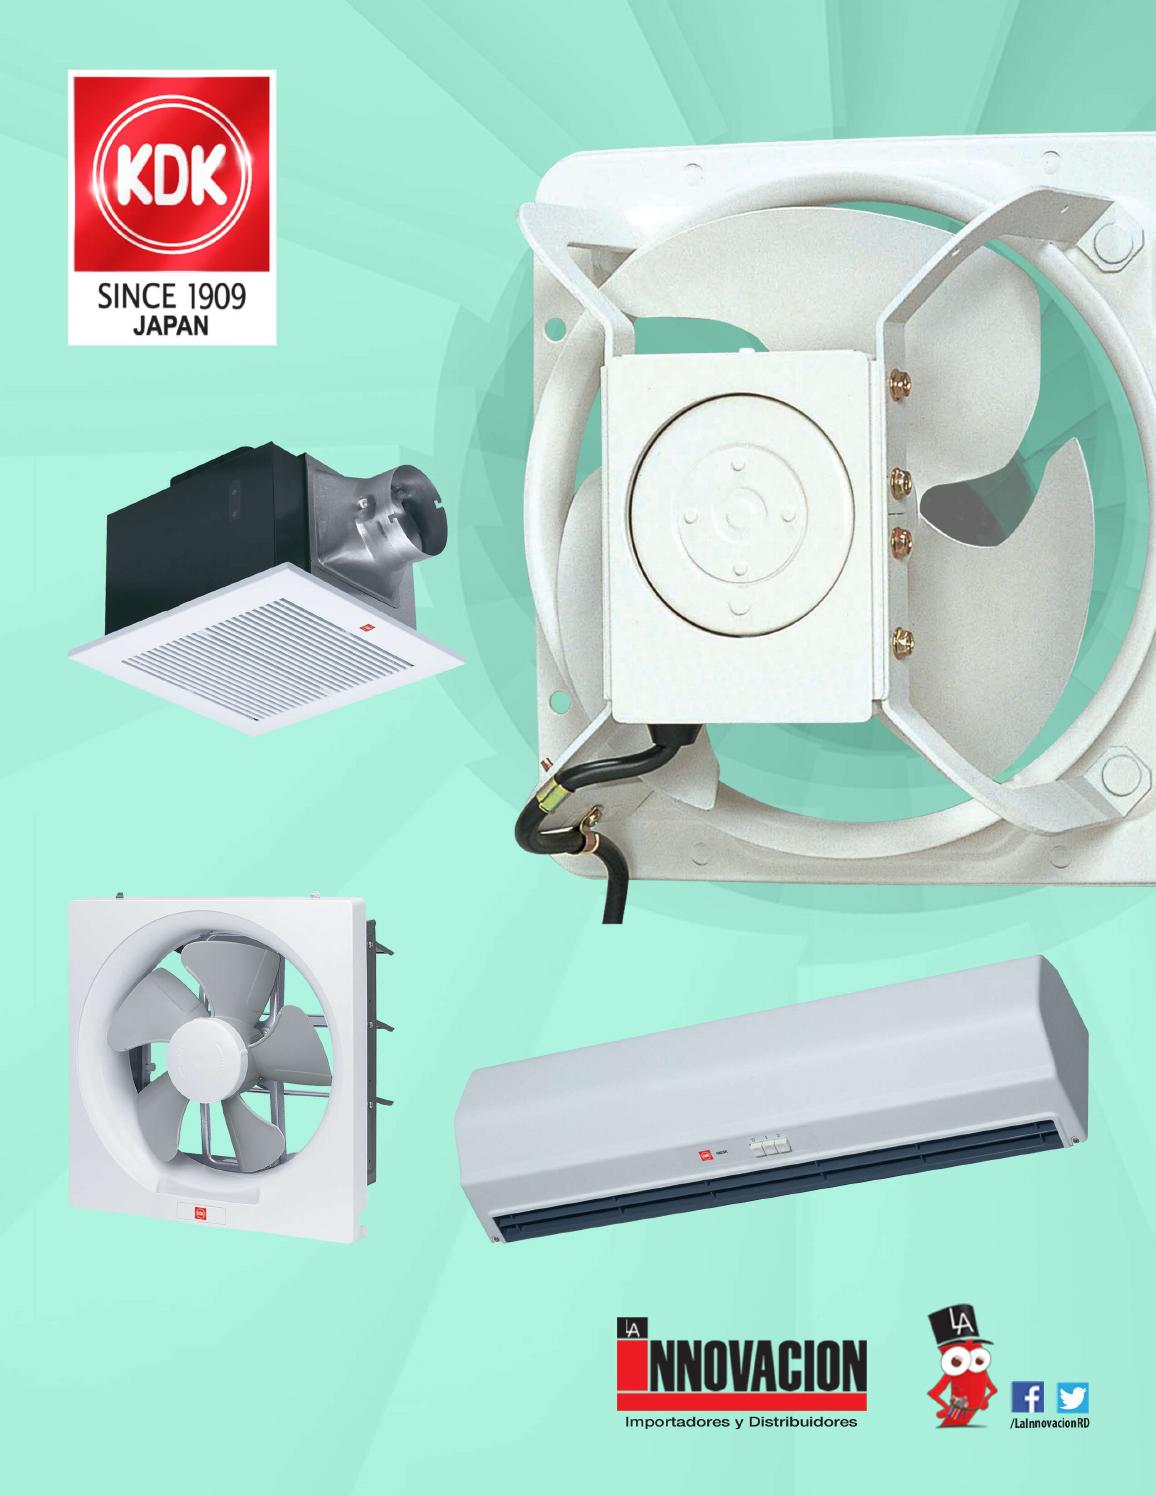 Kdk extractores by la innovaci n issuu - Extractor para bano ...